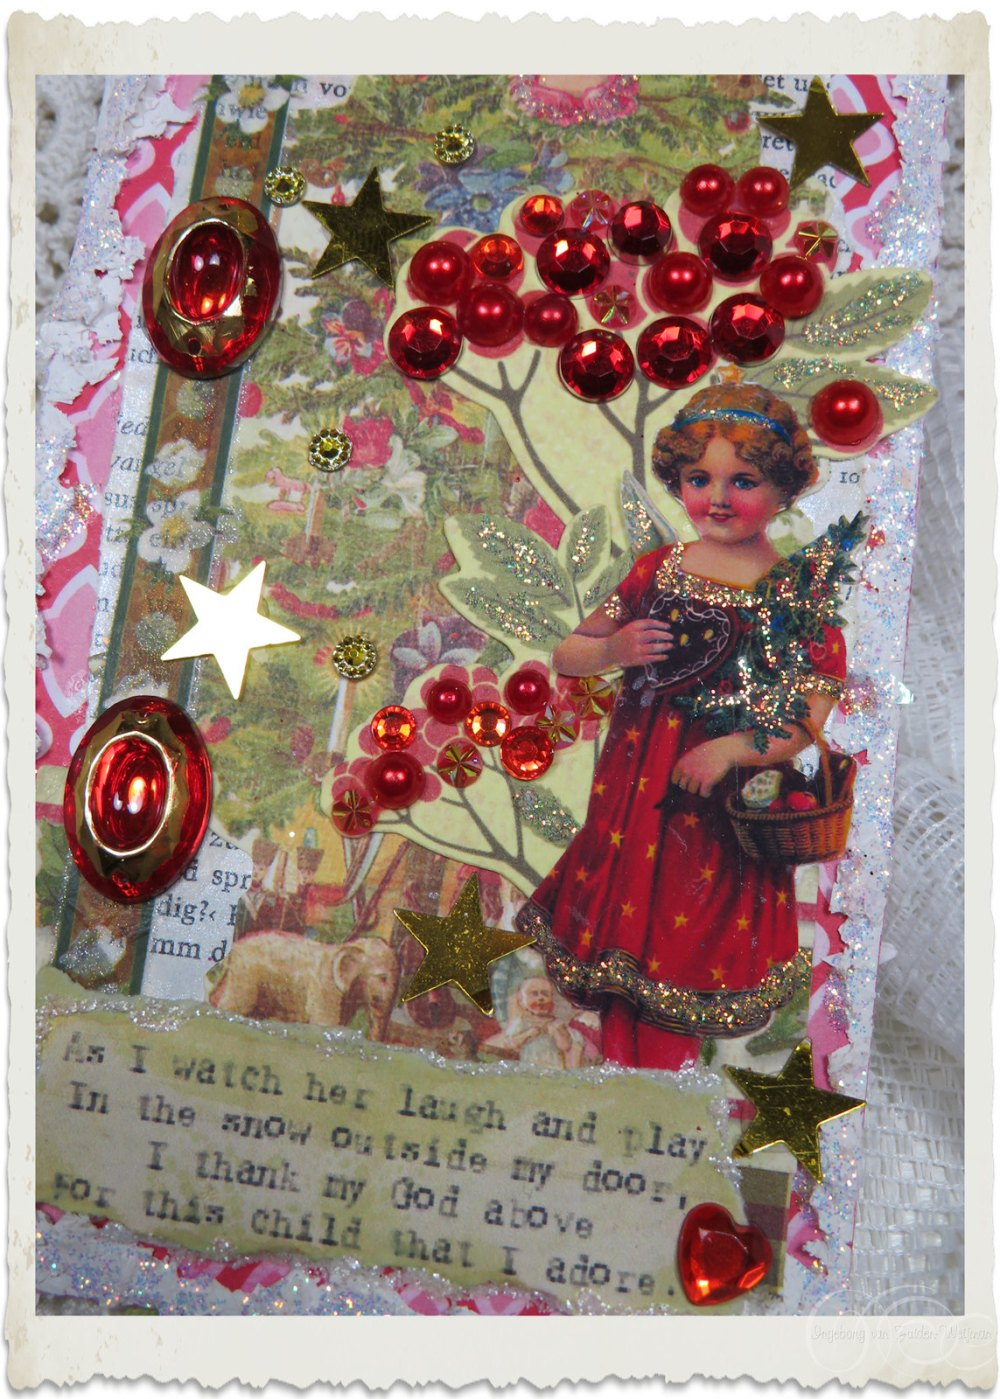 Vintage angel on handmade Christmas tag by Ingeborg van Zuiden